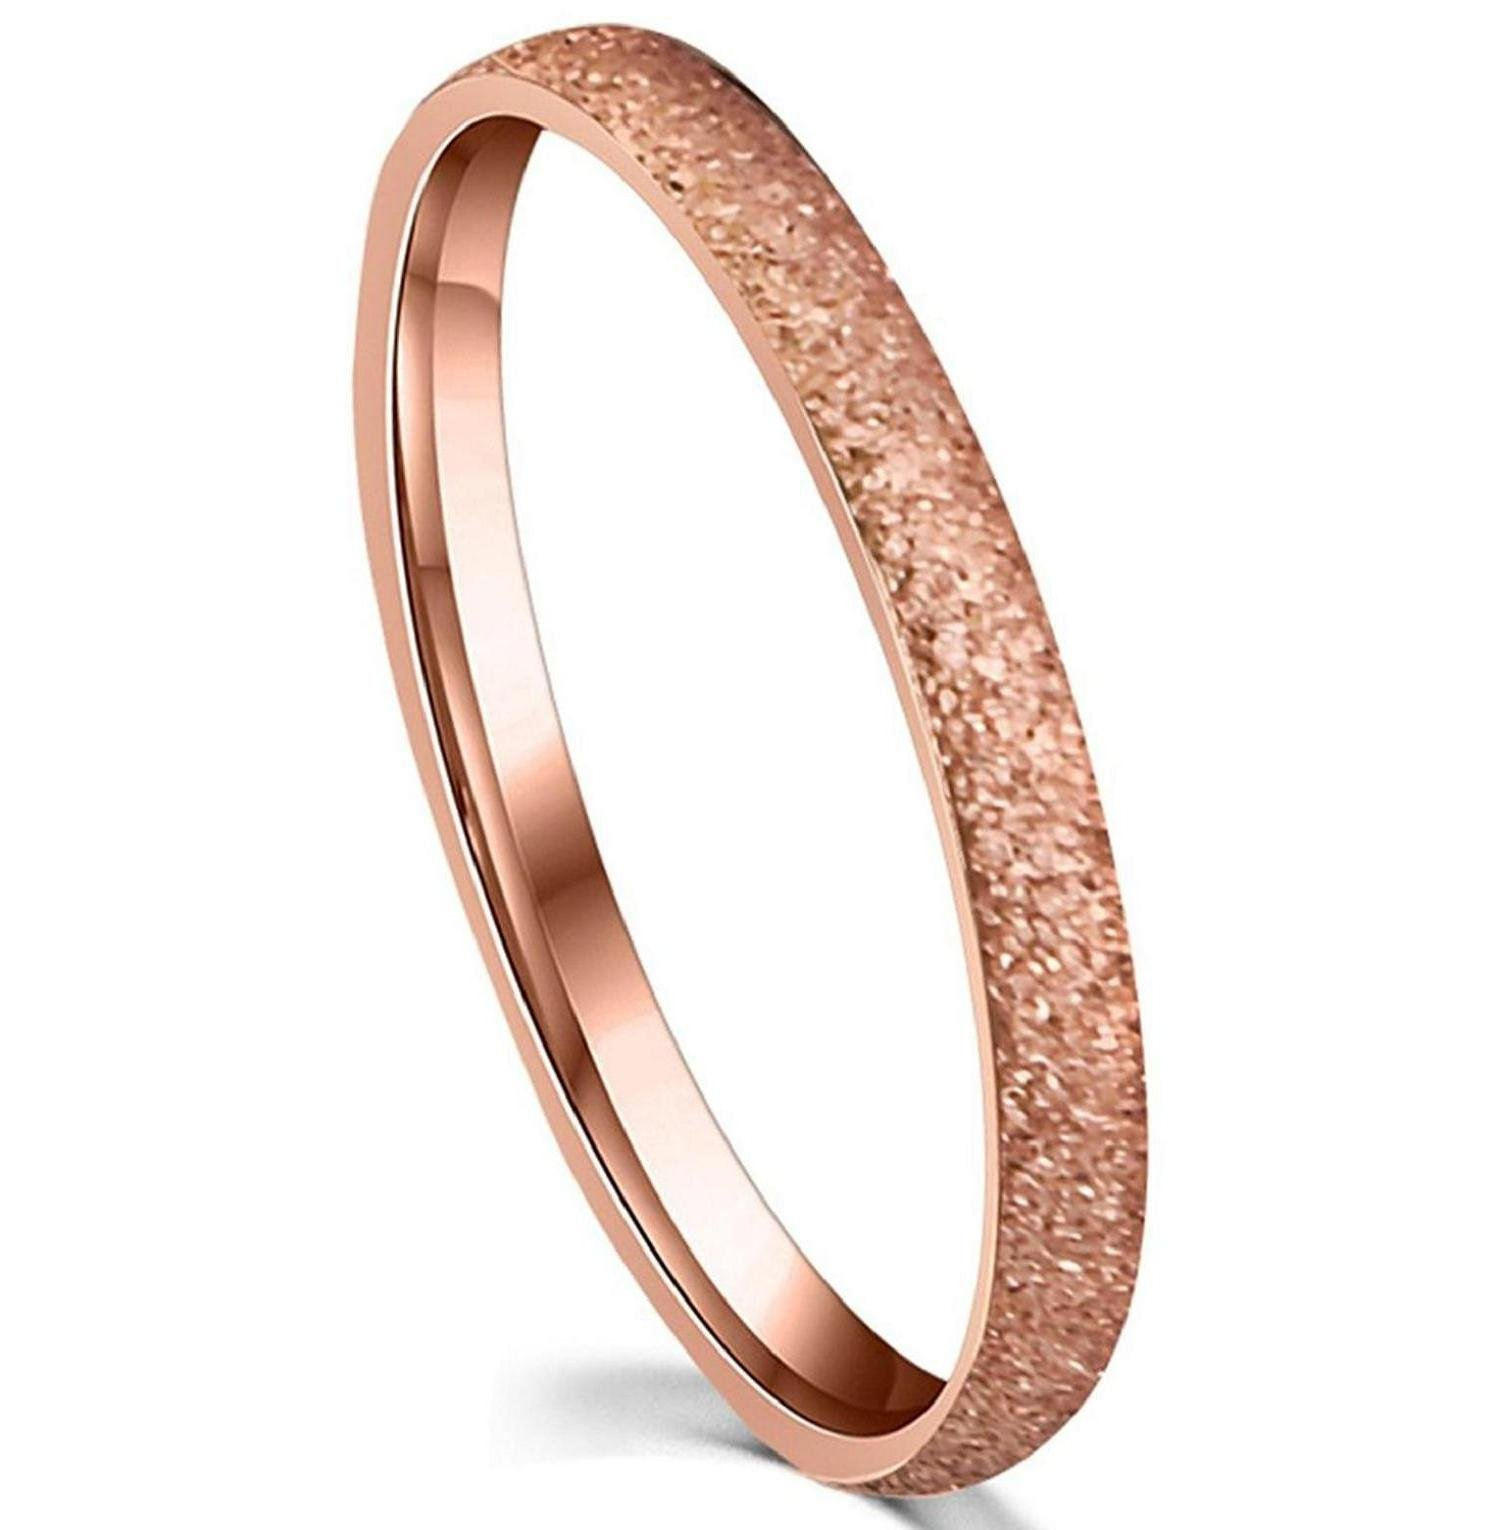 LOVE Beauties Brand New 2mm Women's Titanium Rose Gold Wedding Band Ring 4.5